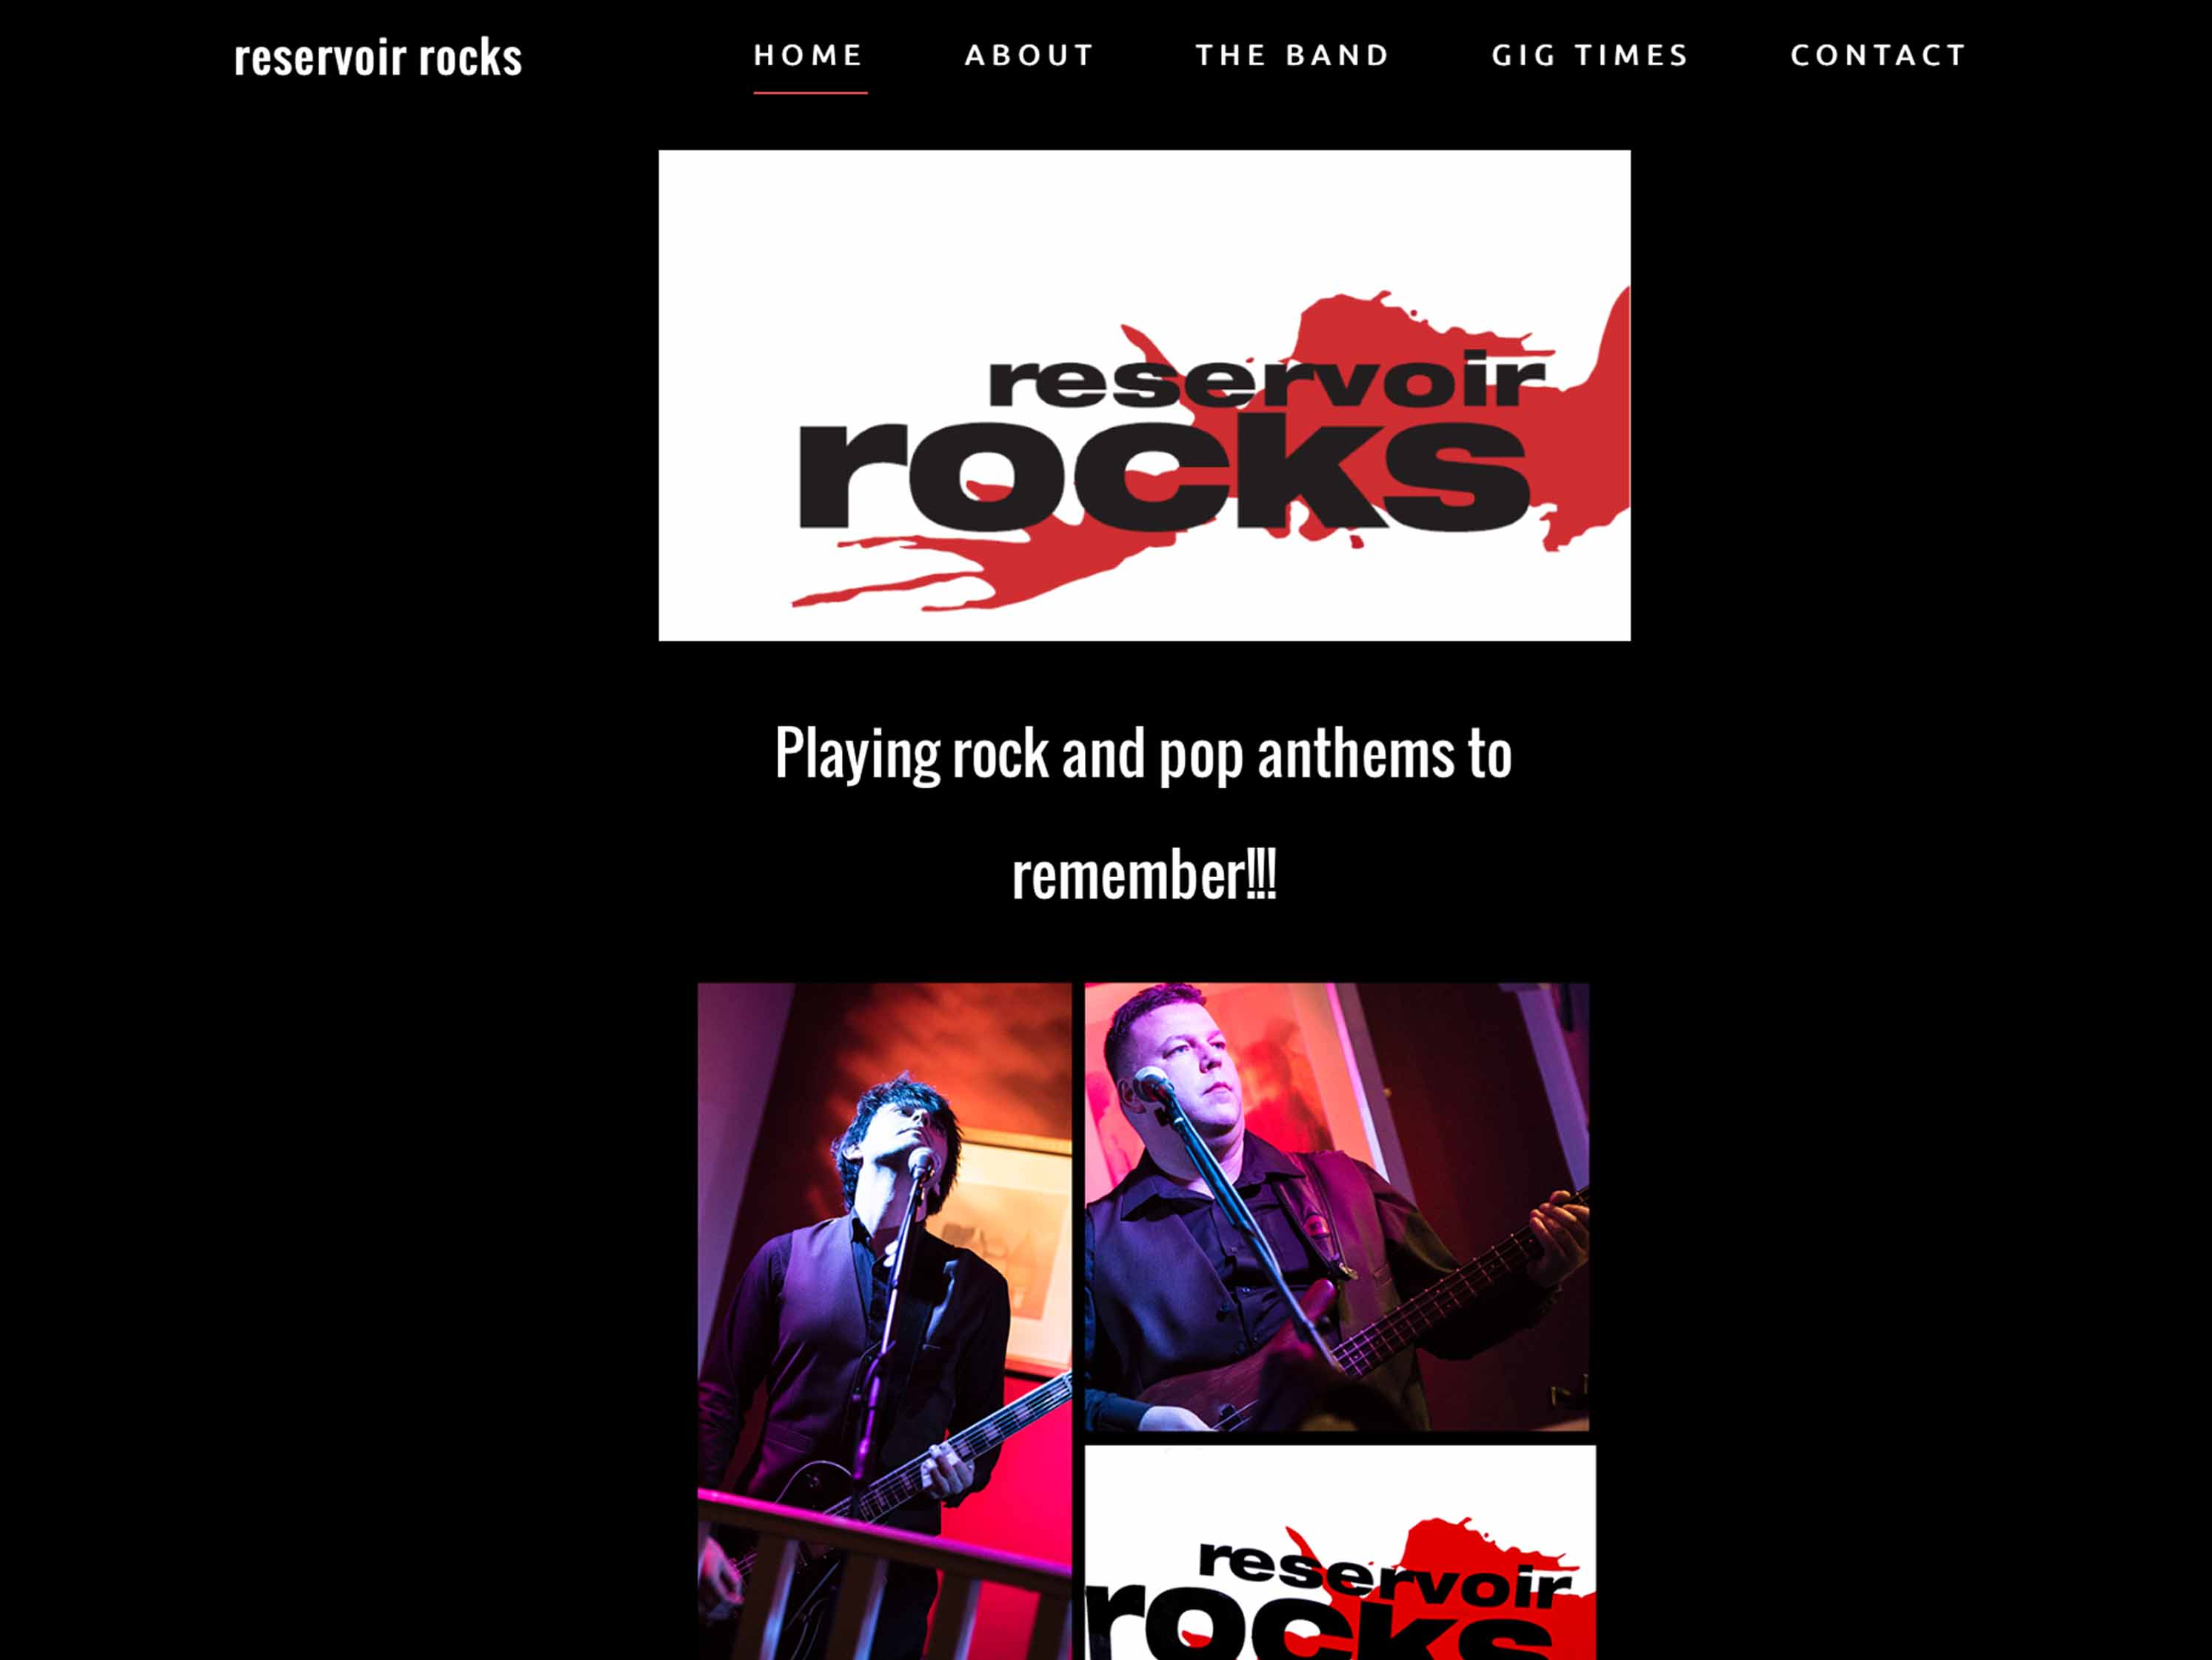 Reservoir Rocks Website Image